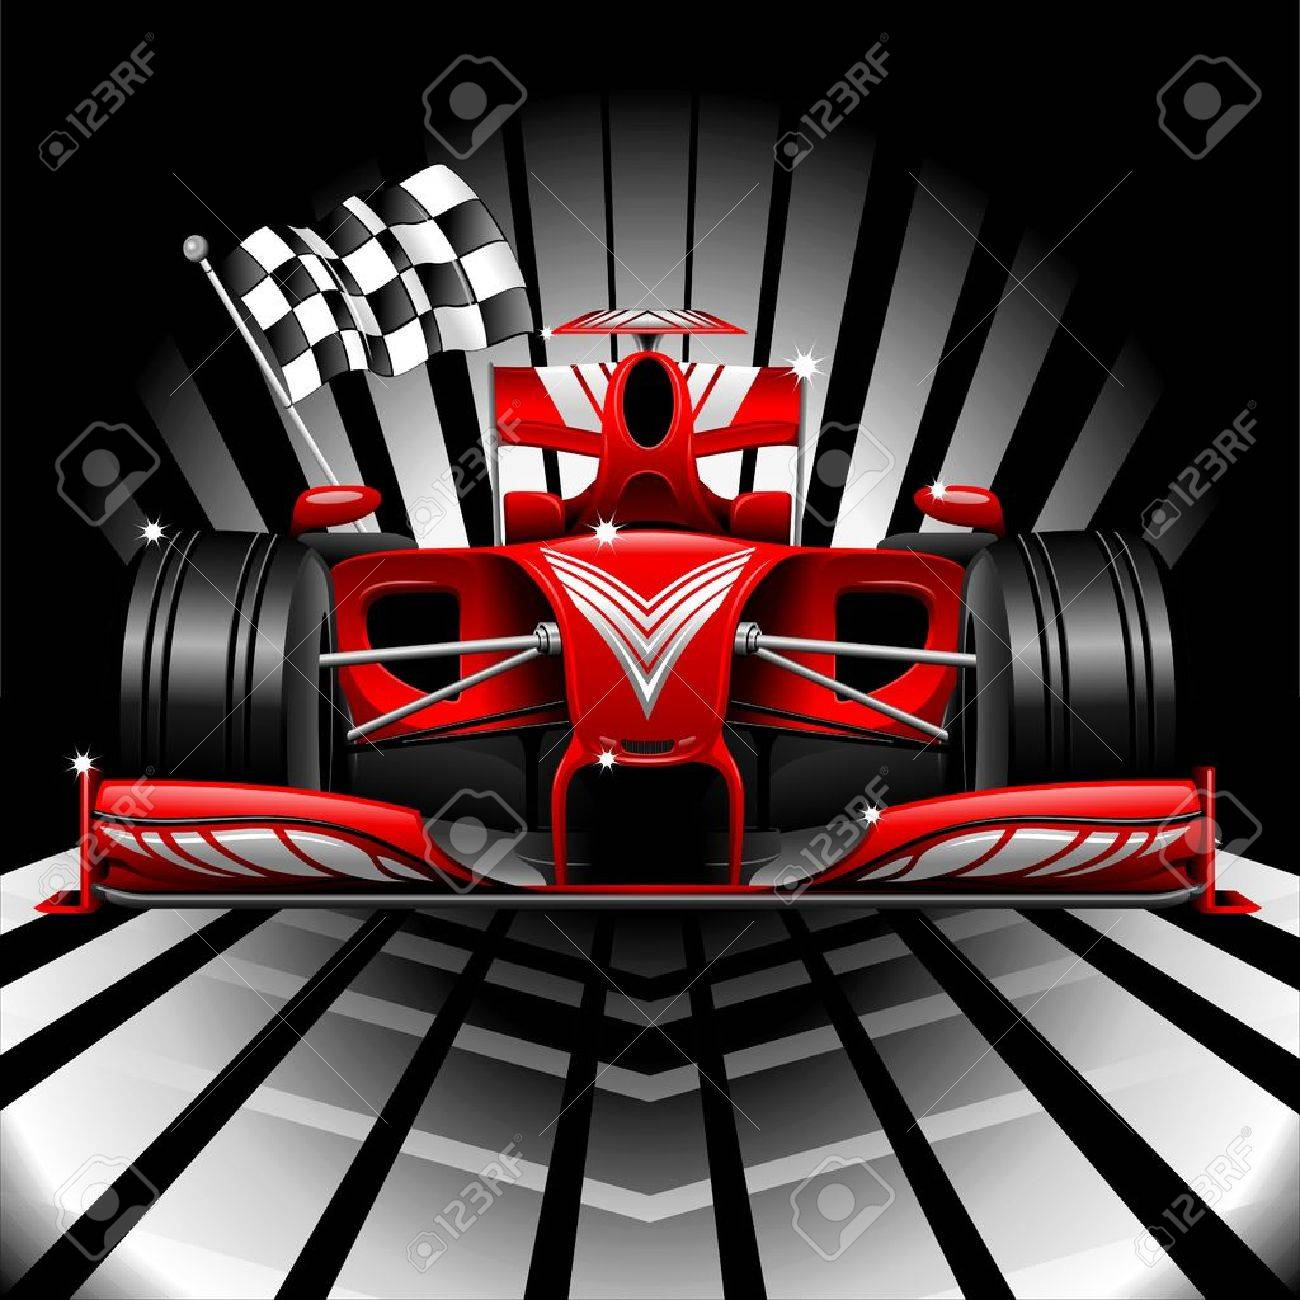 Formula 1 Red Race Car and Checkered Flag Stock Vector - 30218770